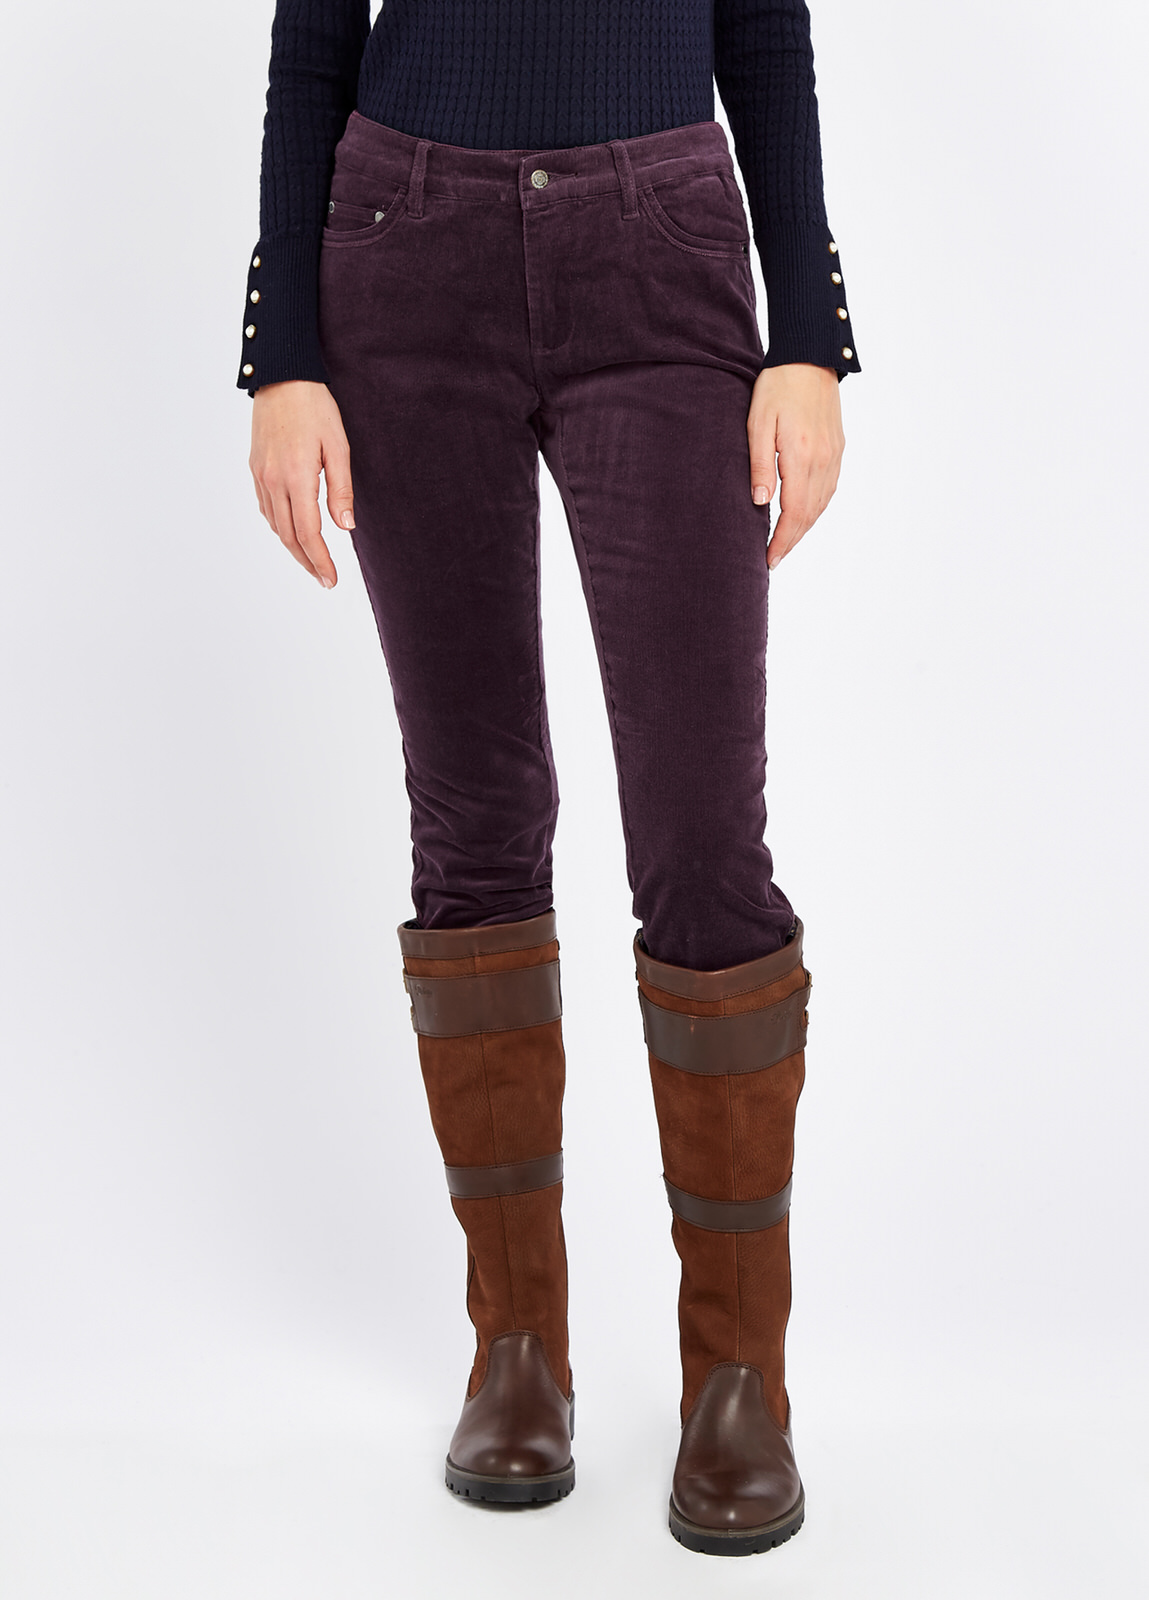 Dubarry_Honeysuckle_Jeans_Plum_on_model